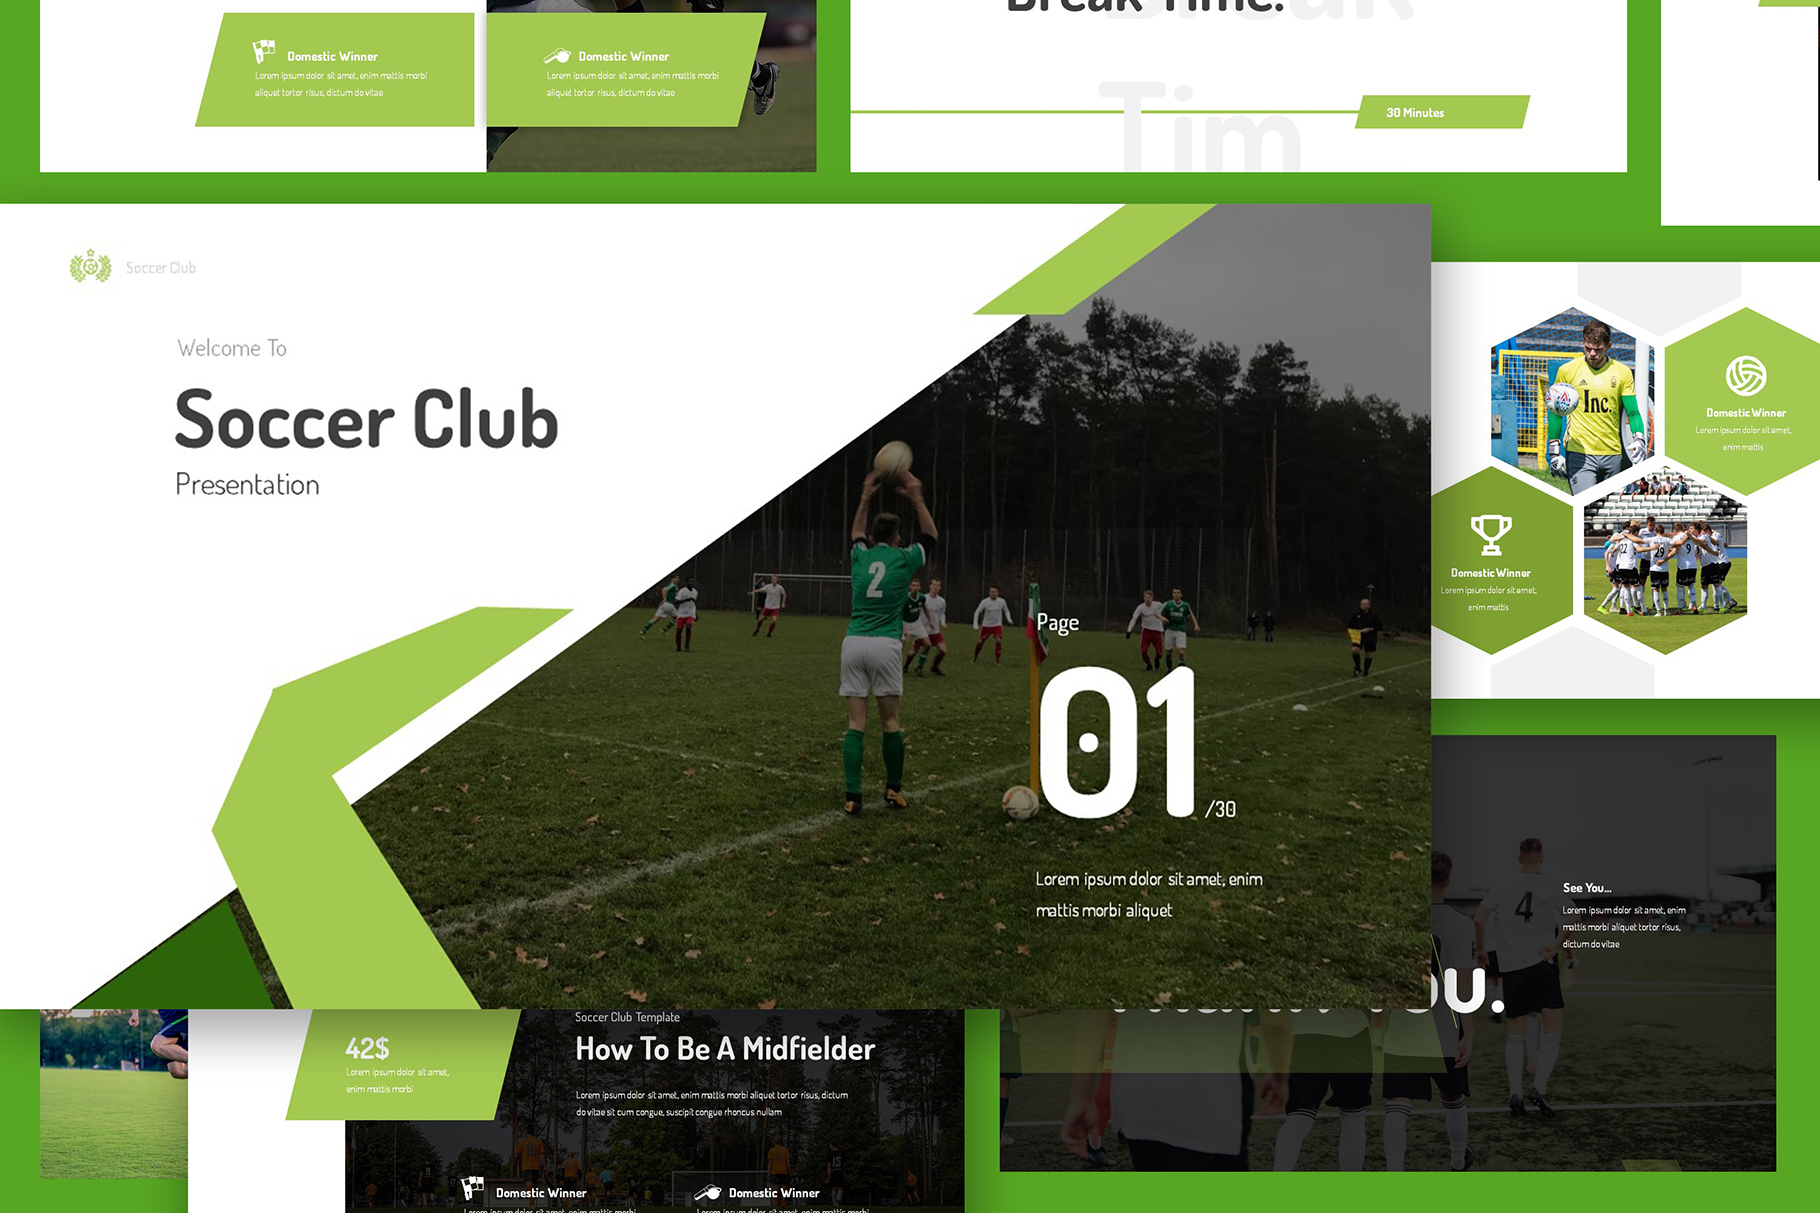 Soccer Club Powerpoint Presentation example image 4